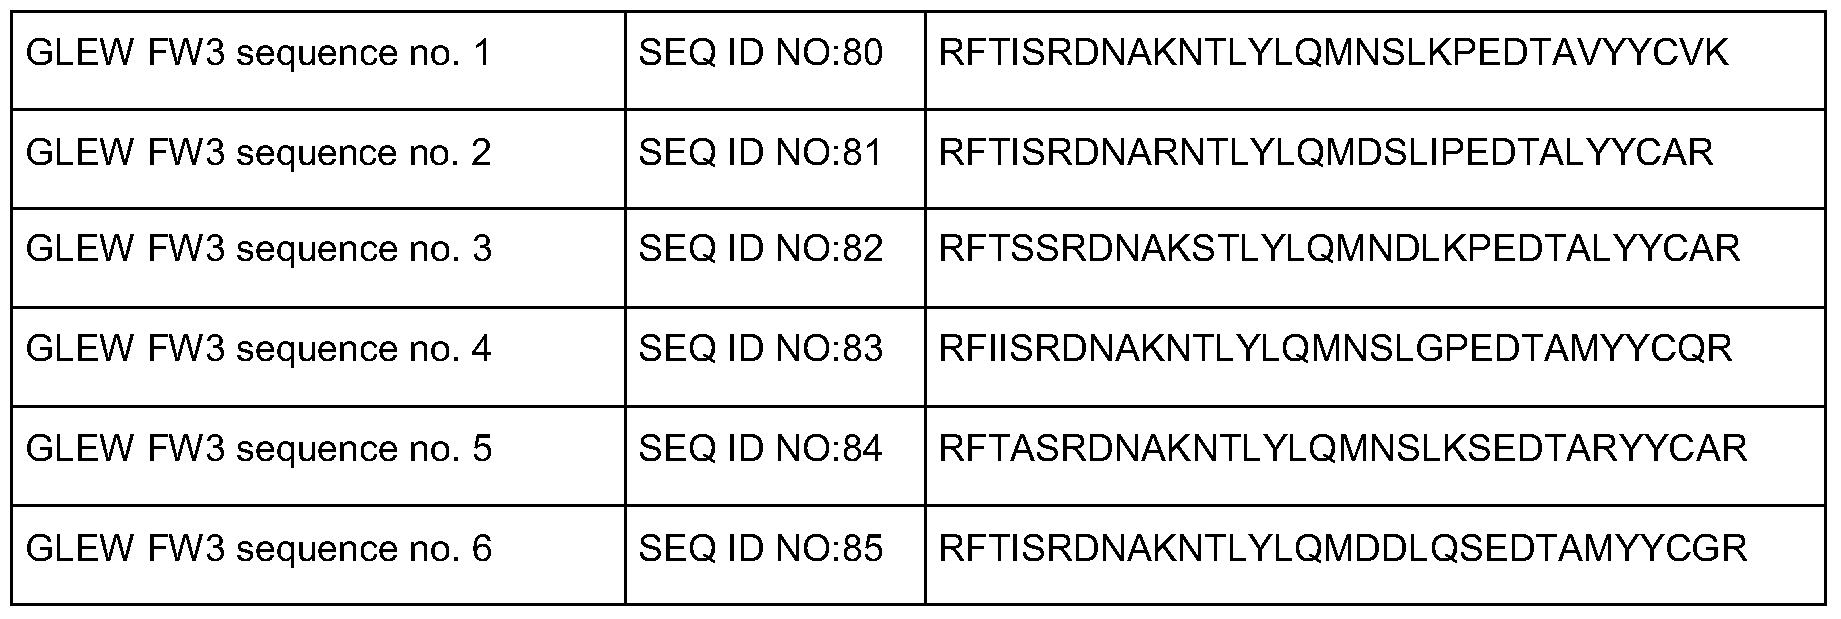 WO2008074840A2 Amino acid sequences directed against a